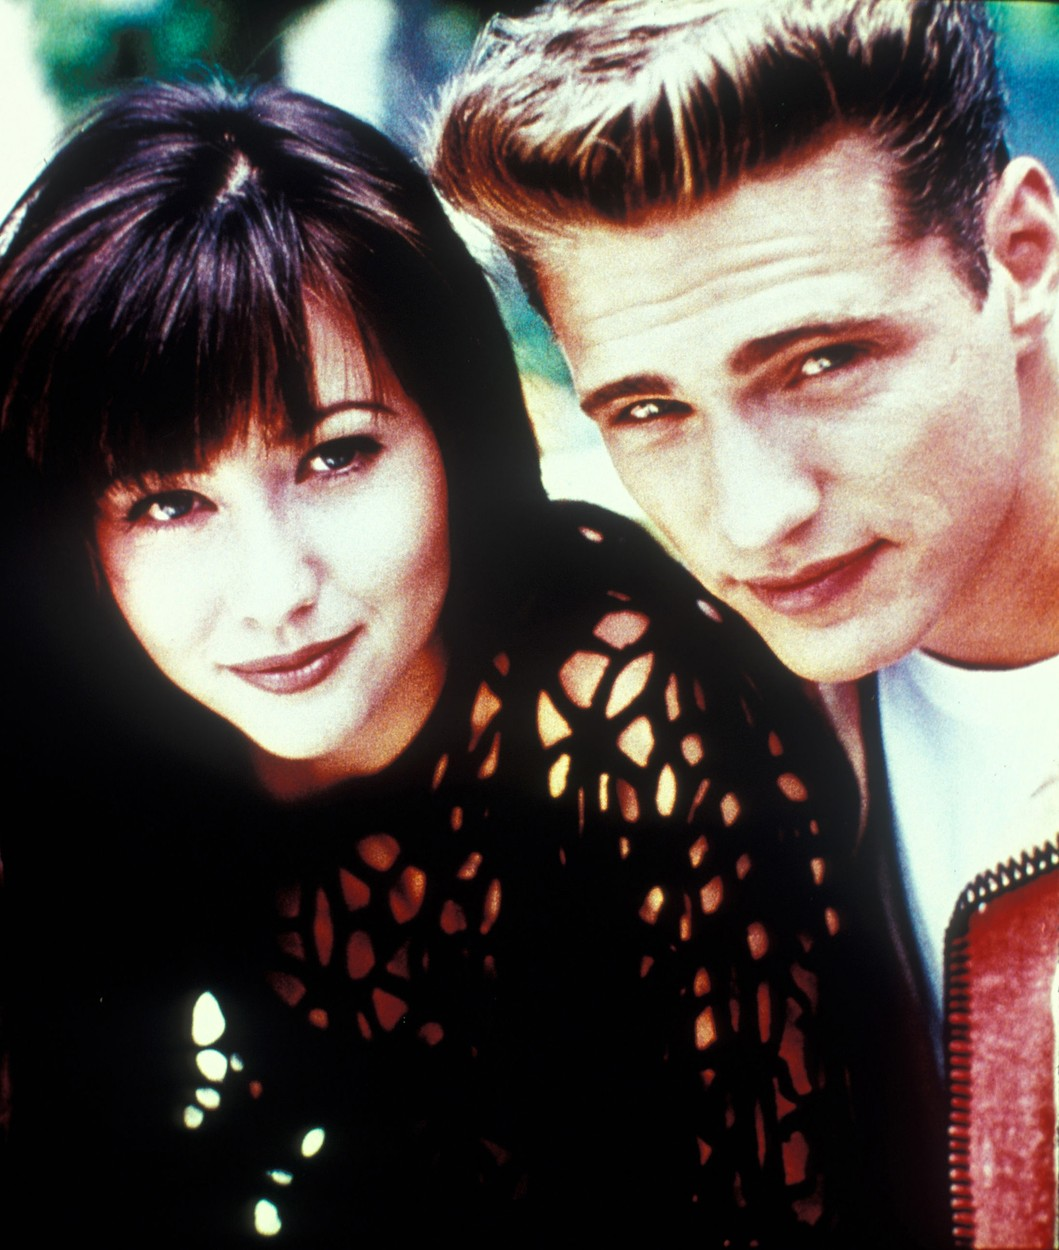 USA. Shannen Doherty and Jason Priestley  in ©Fox Television series:  Beverly Hills 90210 ( 1990-2000 ).,Image: 417930282, License: Rights-managed, Restrictions: Supplied by Landmark Media. Editorial Only. Landmark Media is not the copyright owner of these Film or TV stills but provides a service only for recognised Media outlets., Model Release: no, Credit line: Supplied by LMK / Landmark / Profimedia